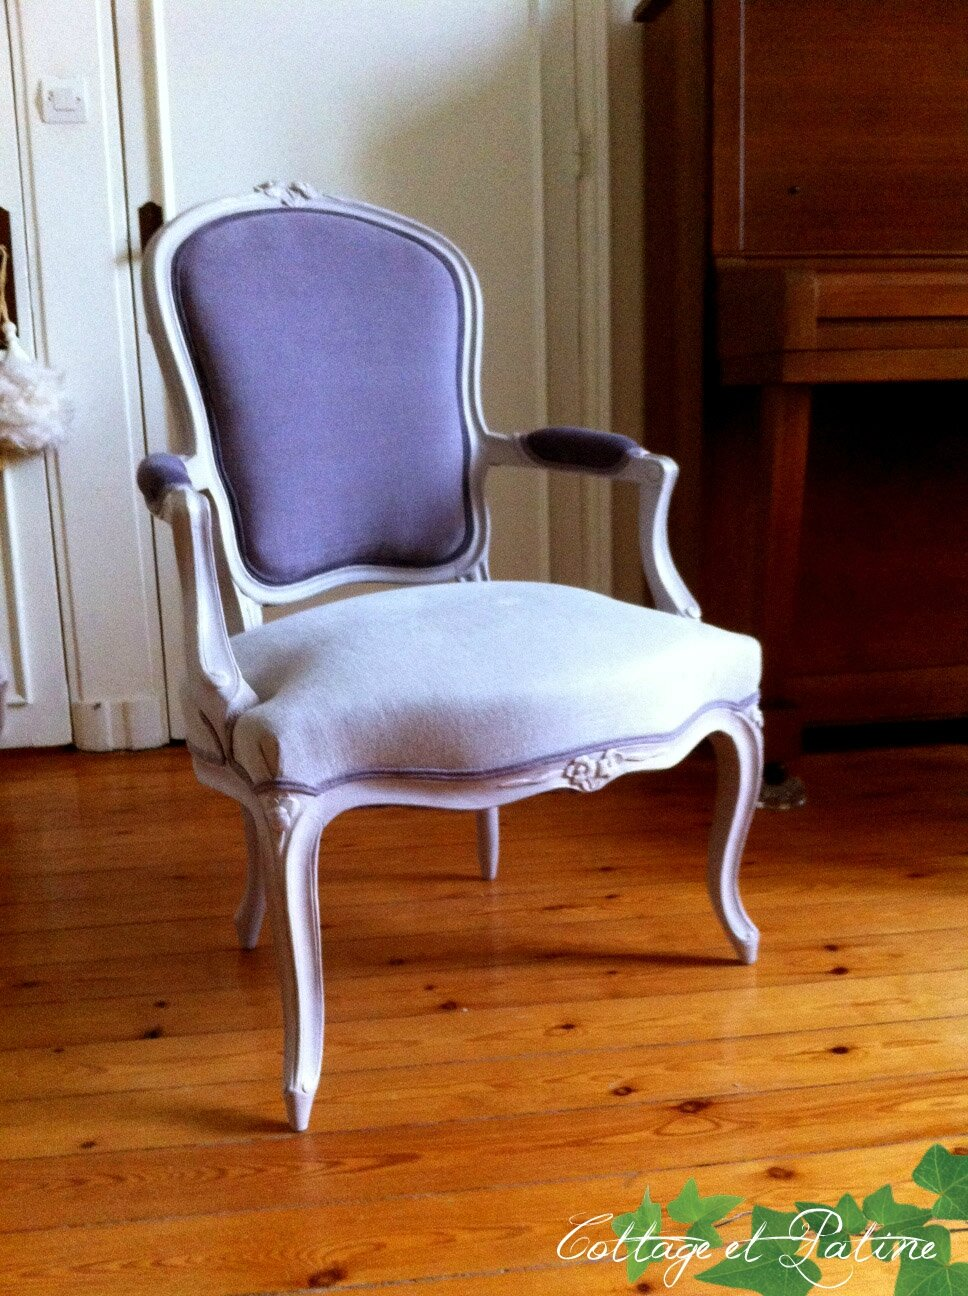 Fauteuil louis xv et salon louis xvi avant apr s cottage et patine le blog - Salon louis xvi ...